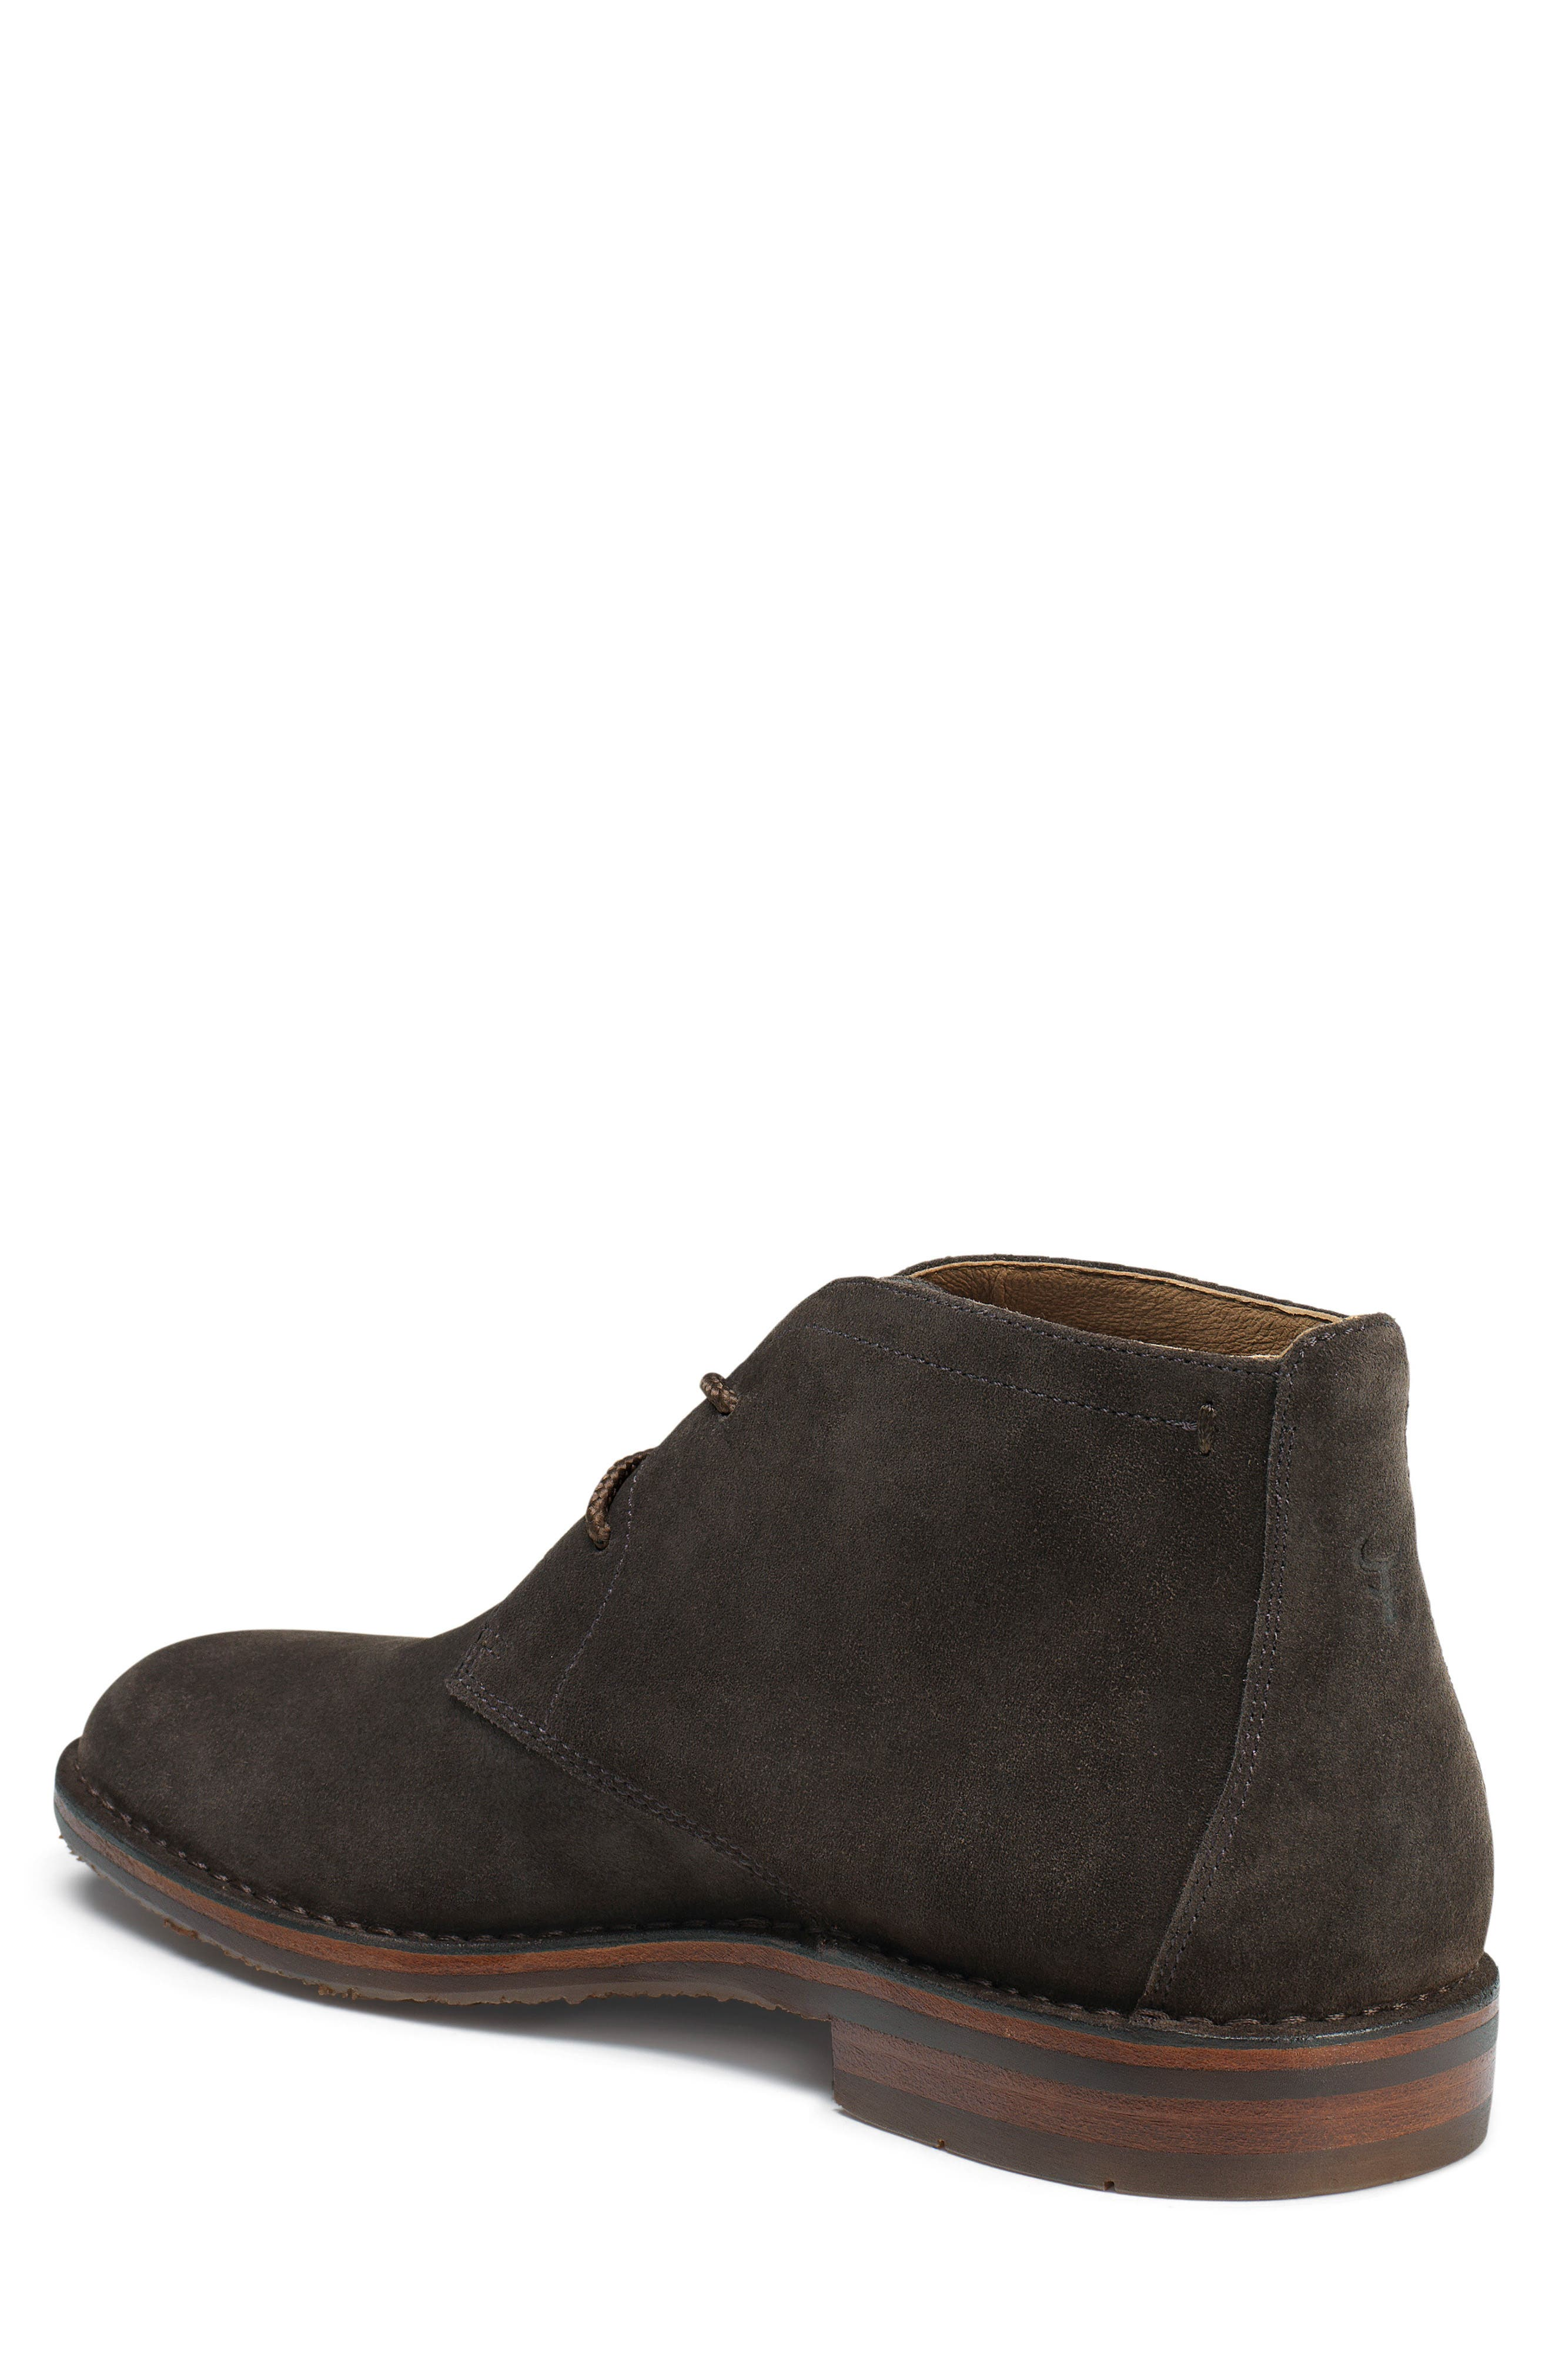 TRASK, 'Brady' Chukka Boot, Alternate thumbnail 2, color, GRAY SUEDE